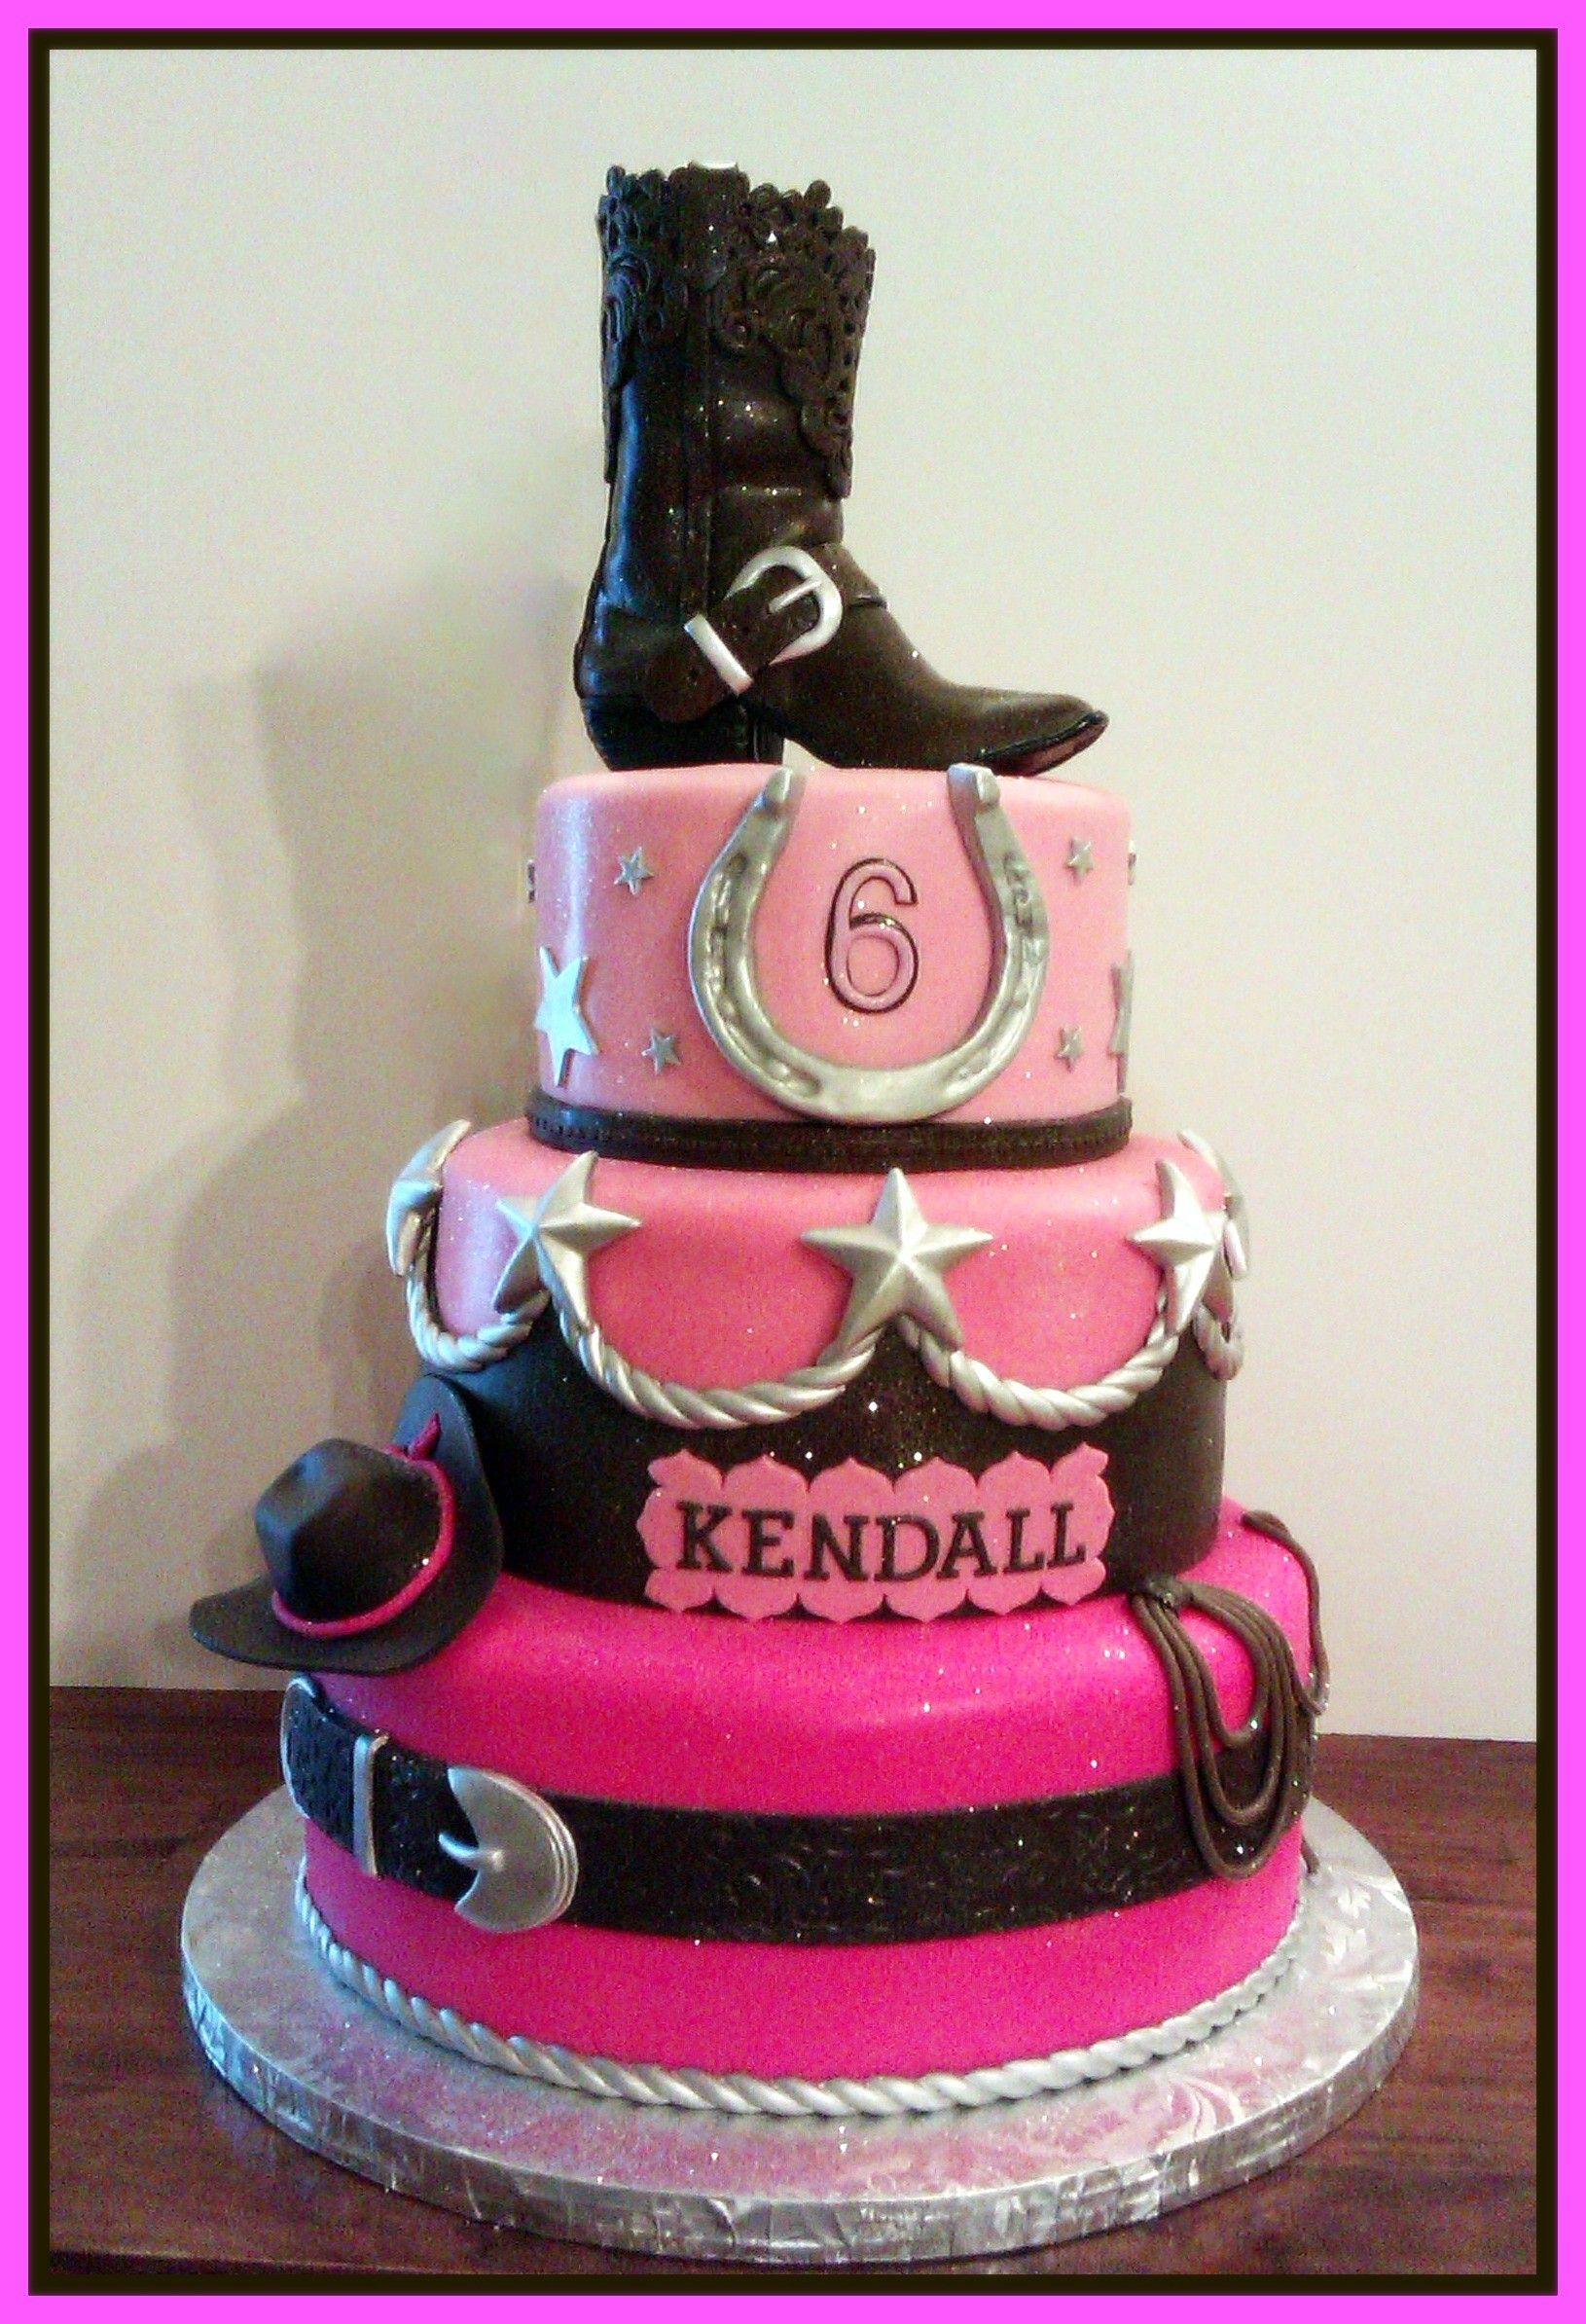 Cowboy party cake ideas - Find This Pin And More On Birthday Party Ideas Cowgirl Cousin Cake